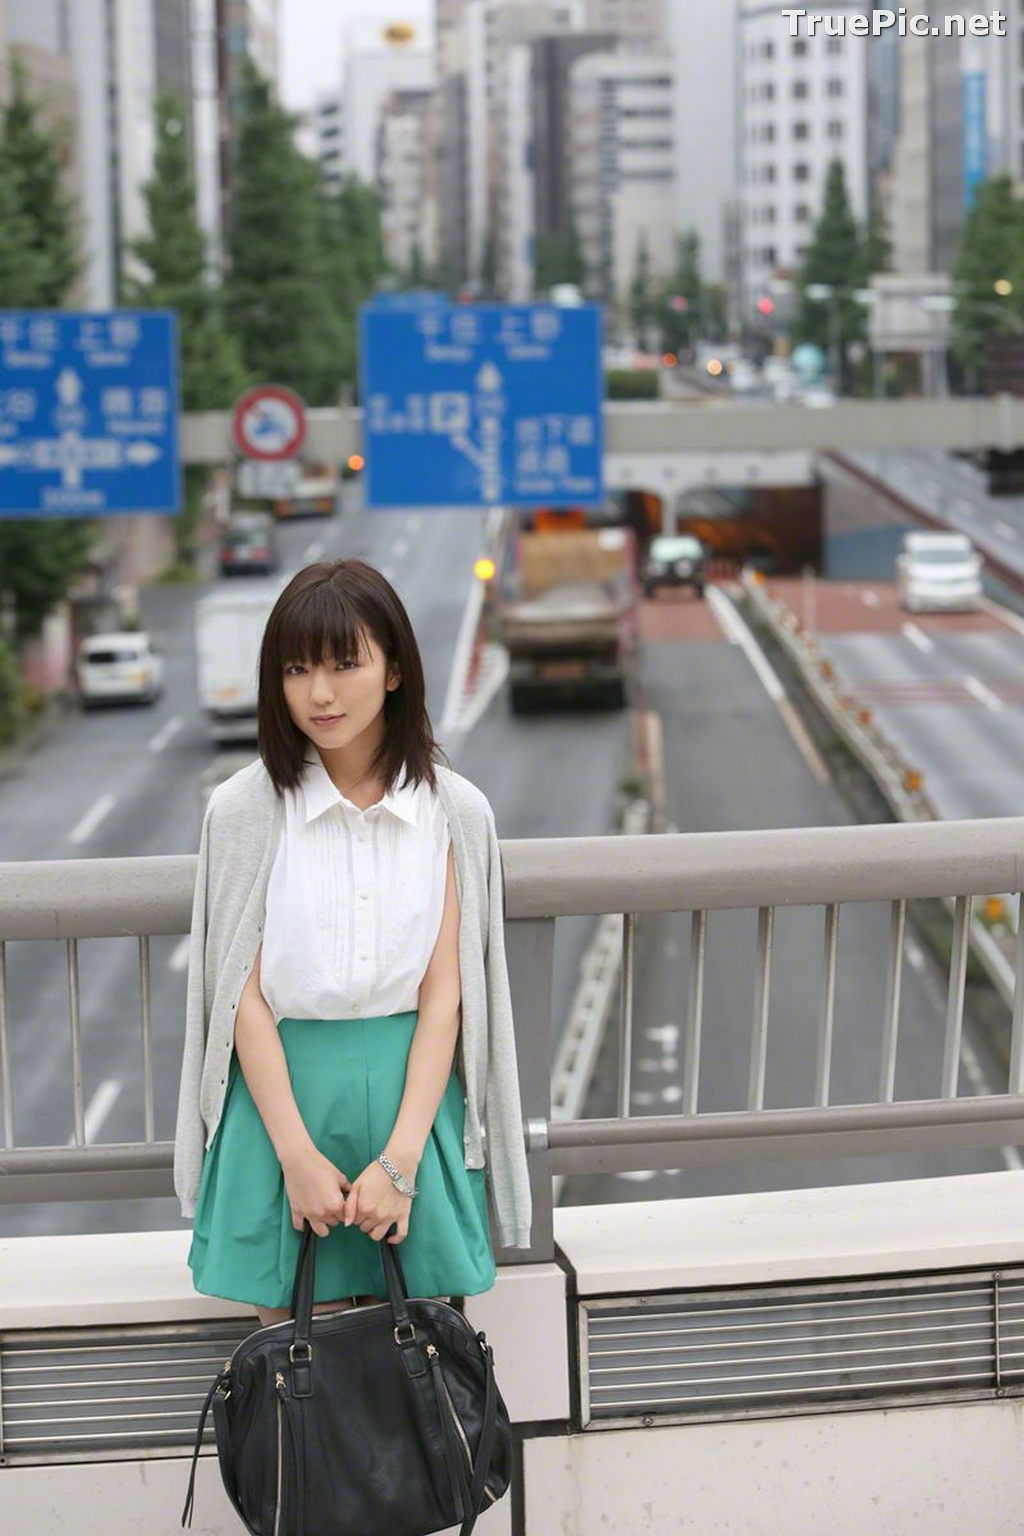 Image [WBGC Photograph] No.131 - Japanese Singer and Actress - Erina Mano - TruePic.net - Picture-9